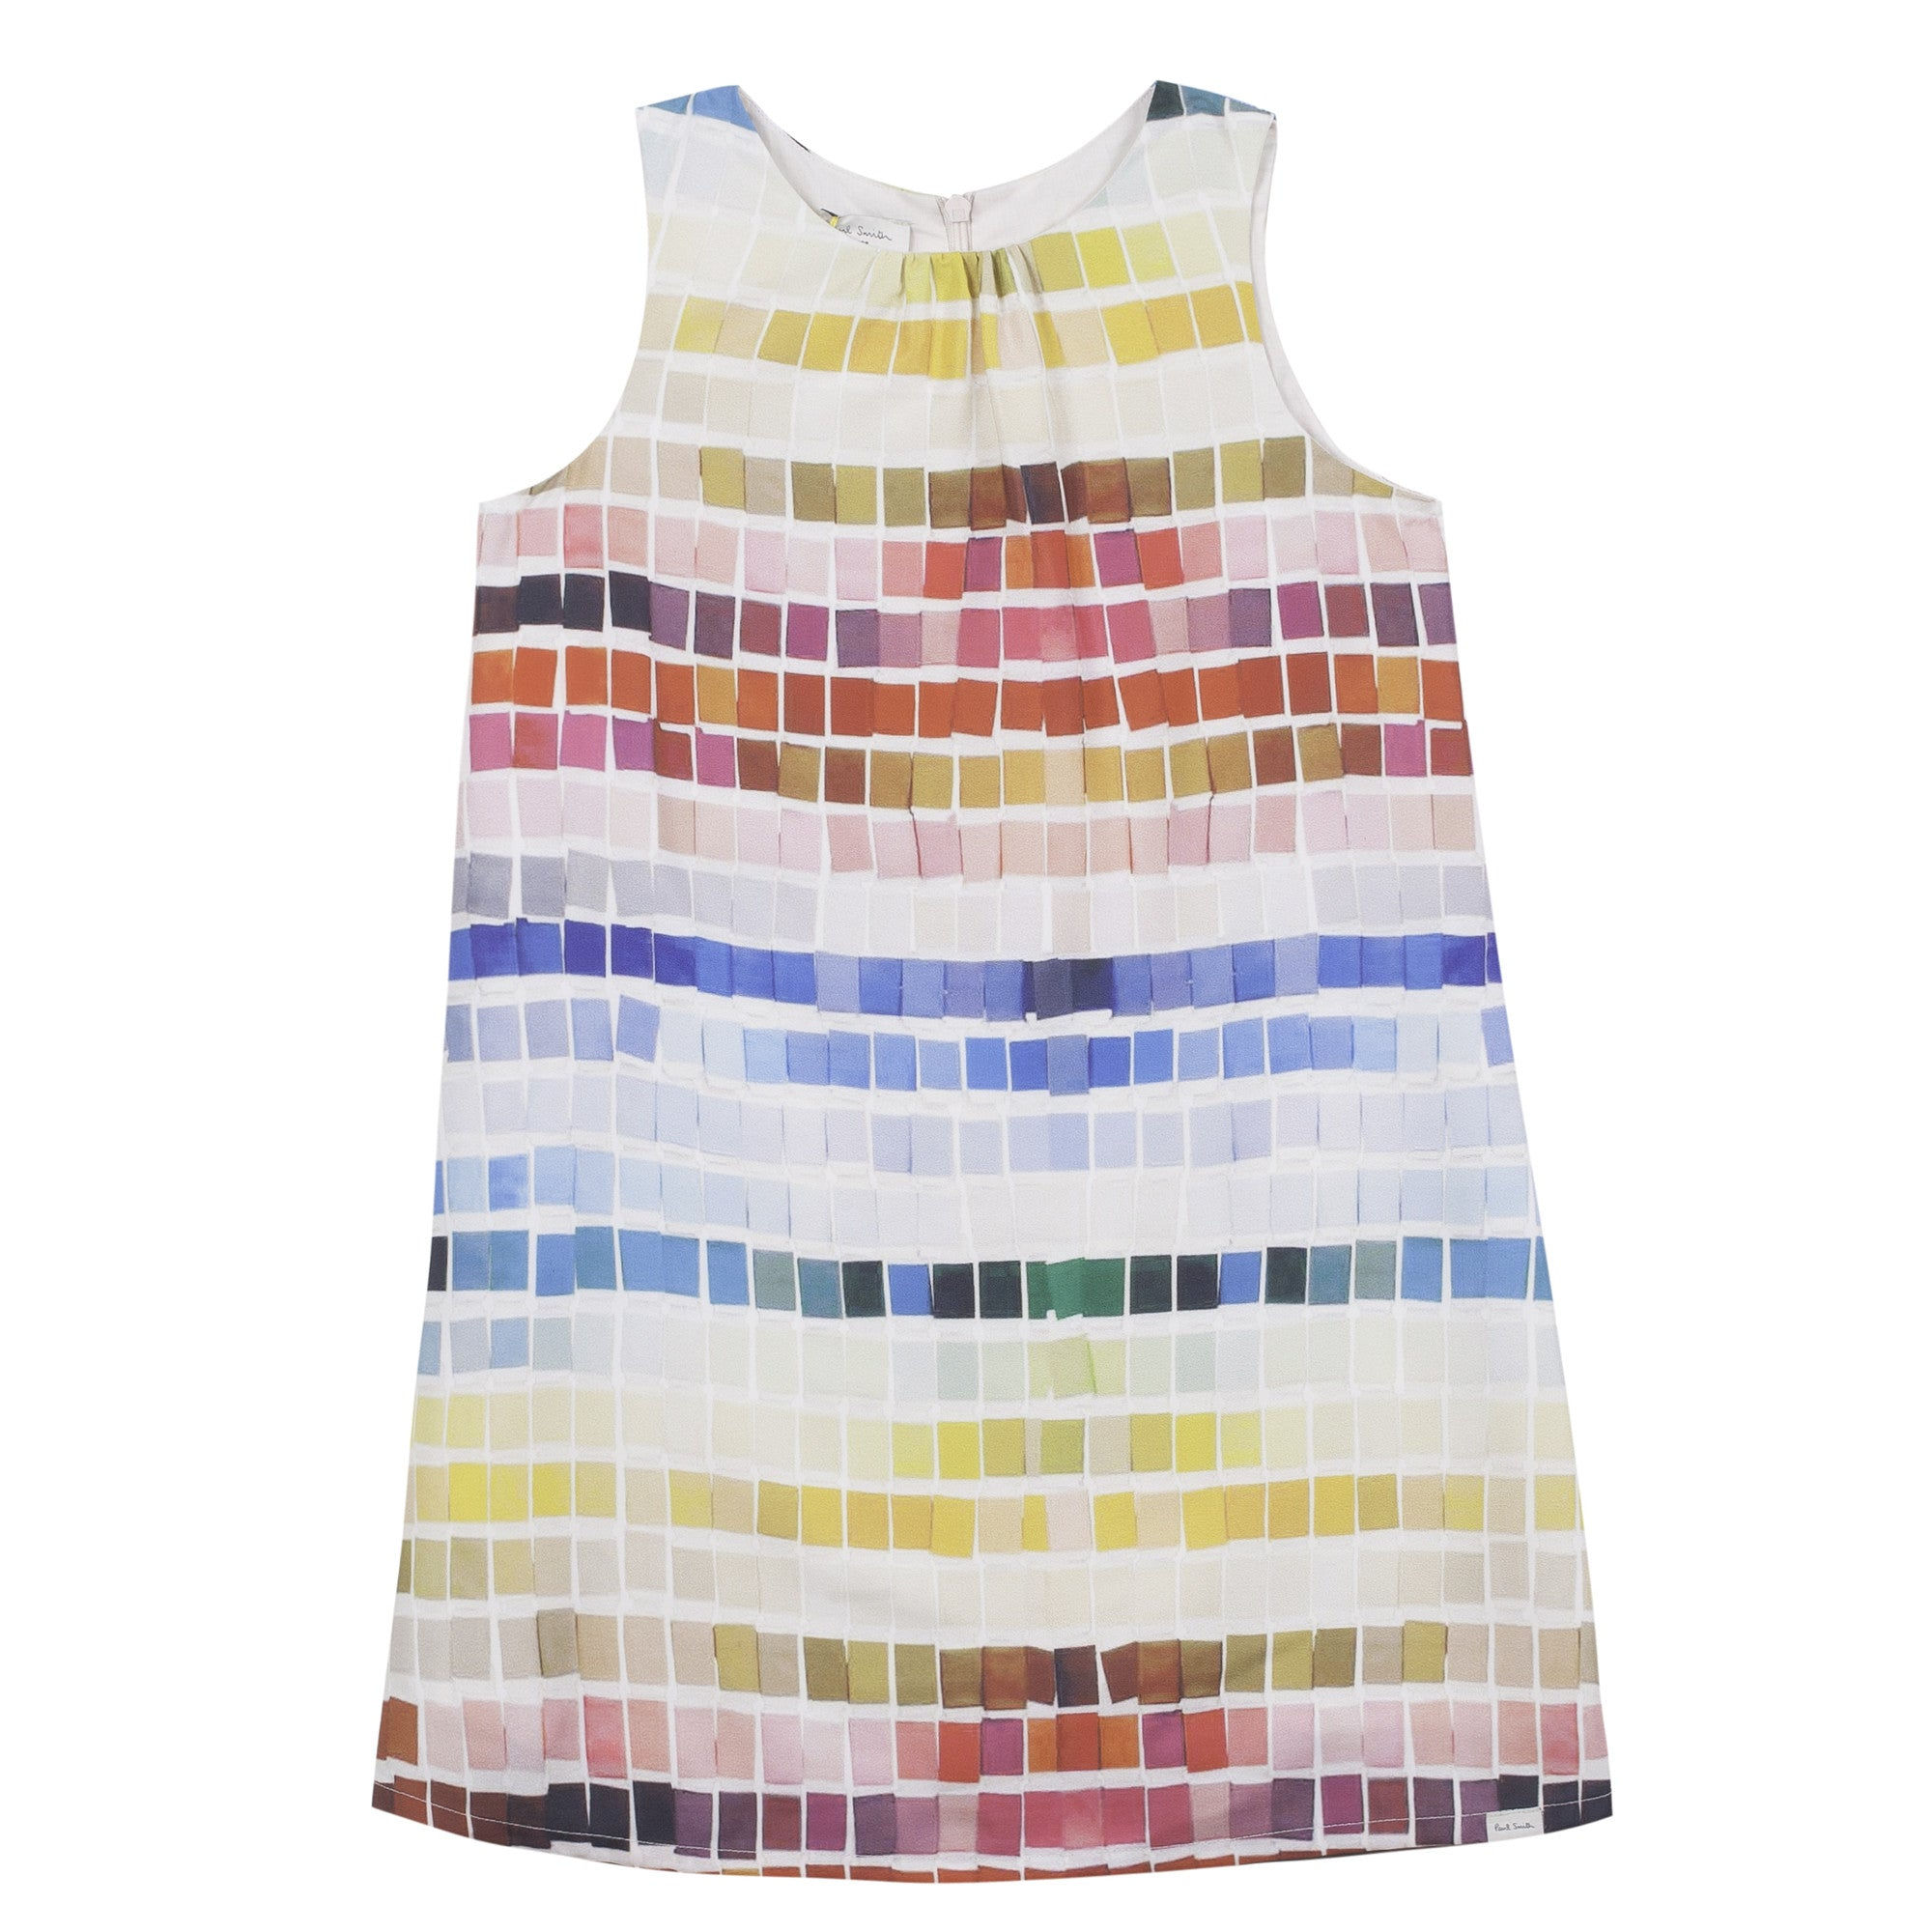 Paul Smith Swatch Print Dress - Ladida